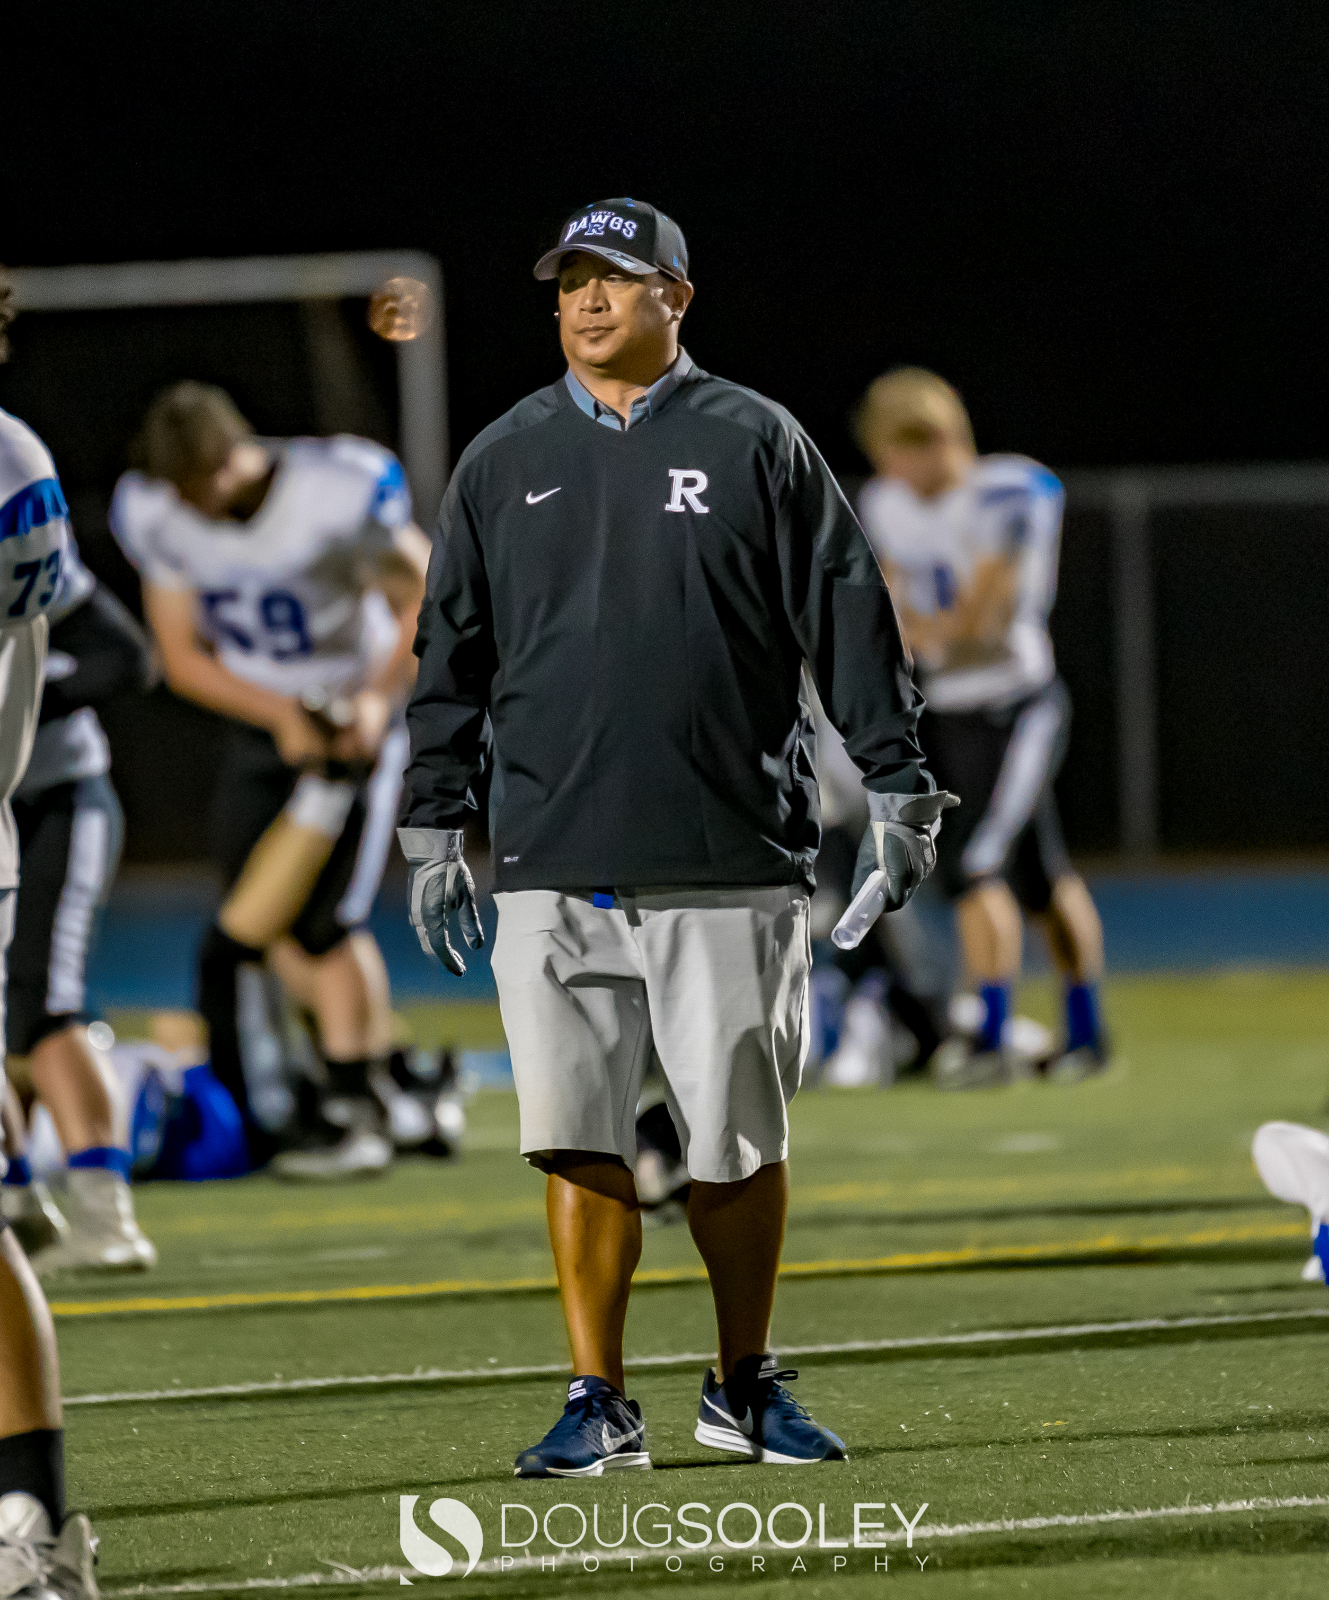 2018 Football Defensive Coordinator Happy to Start Fresh with team in 2019!